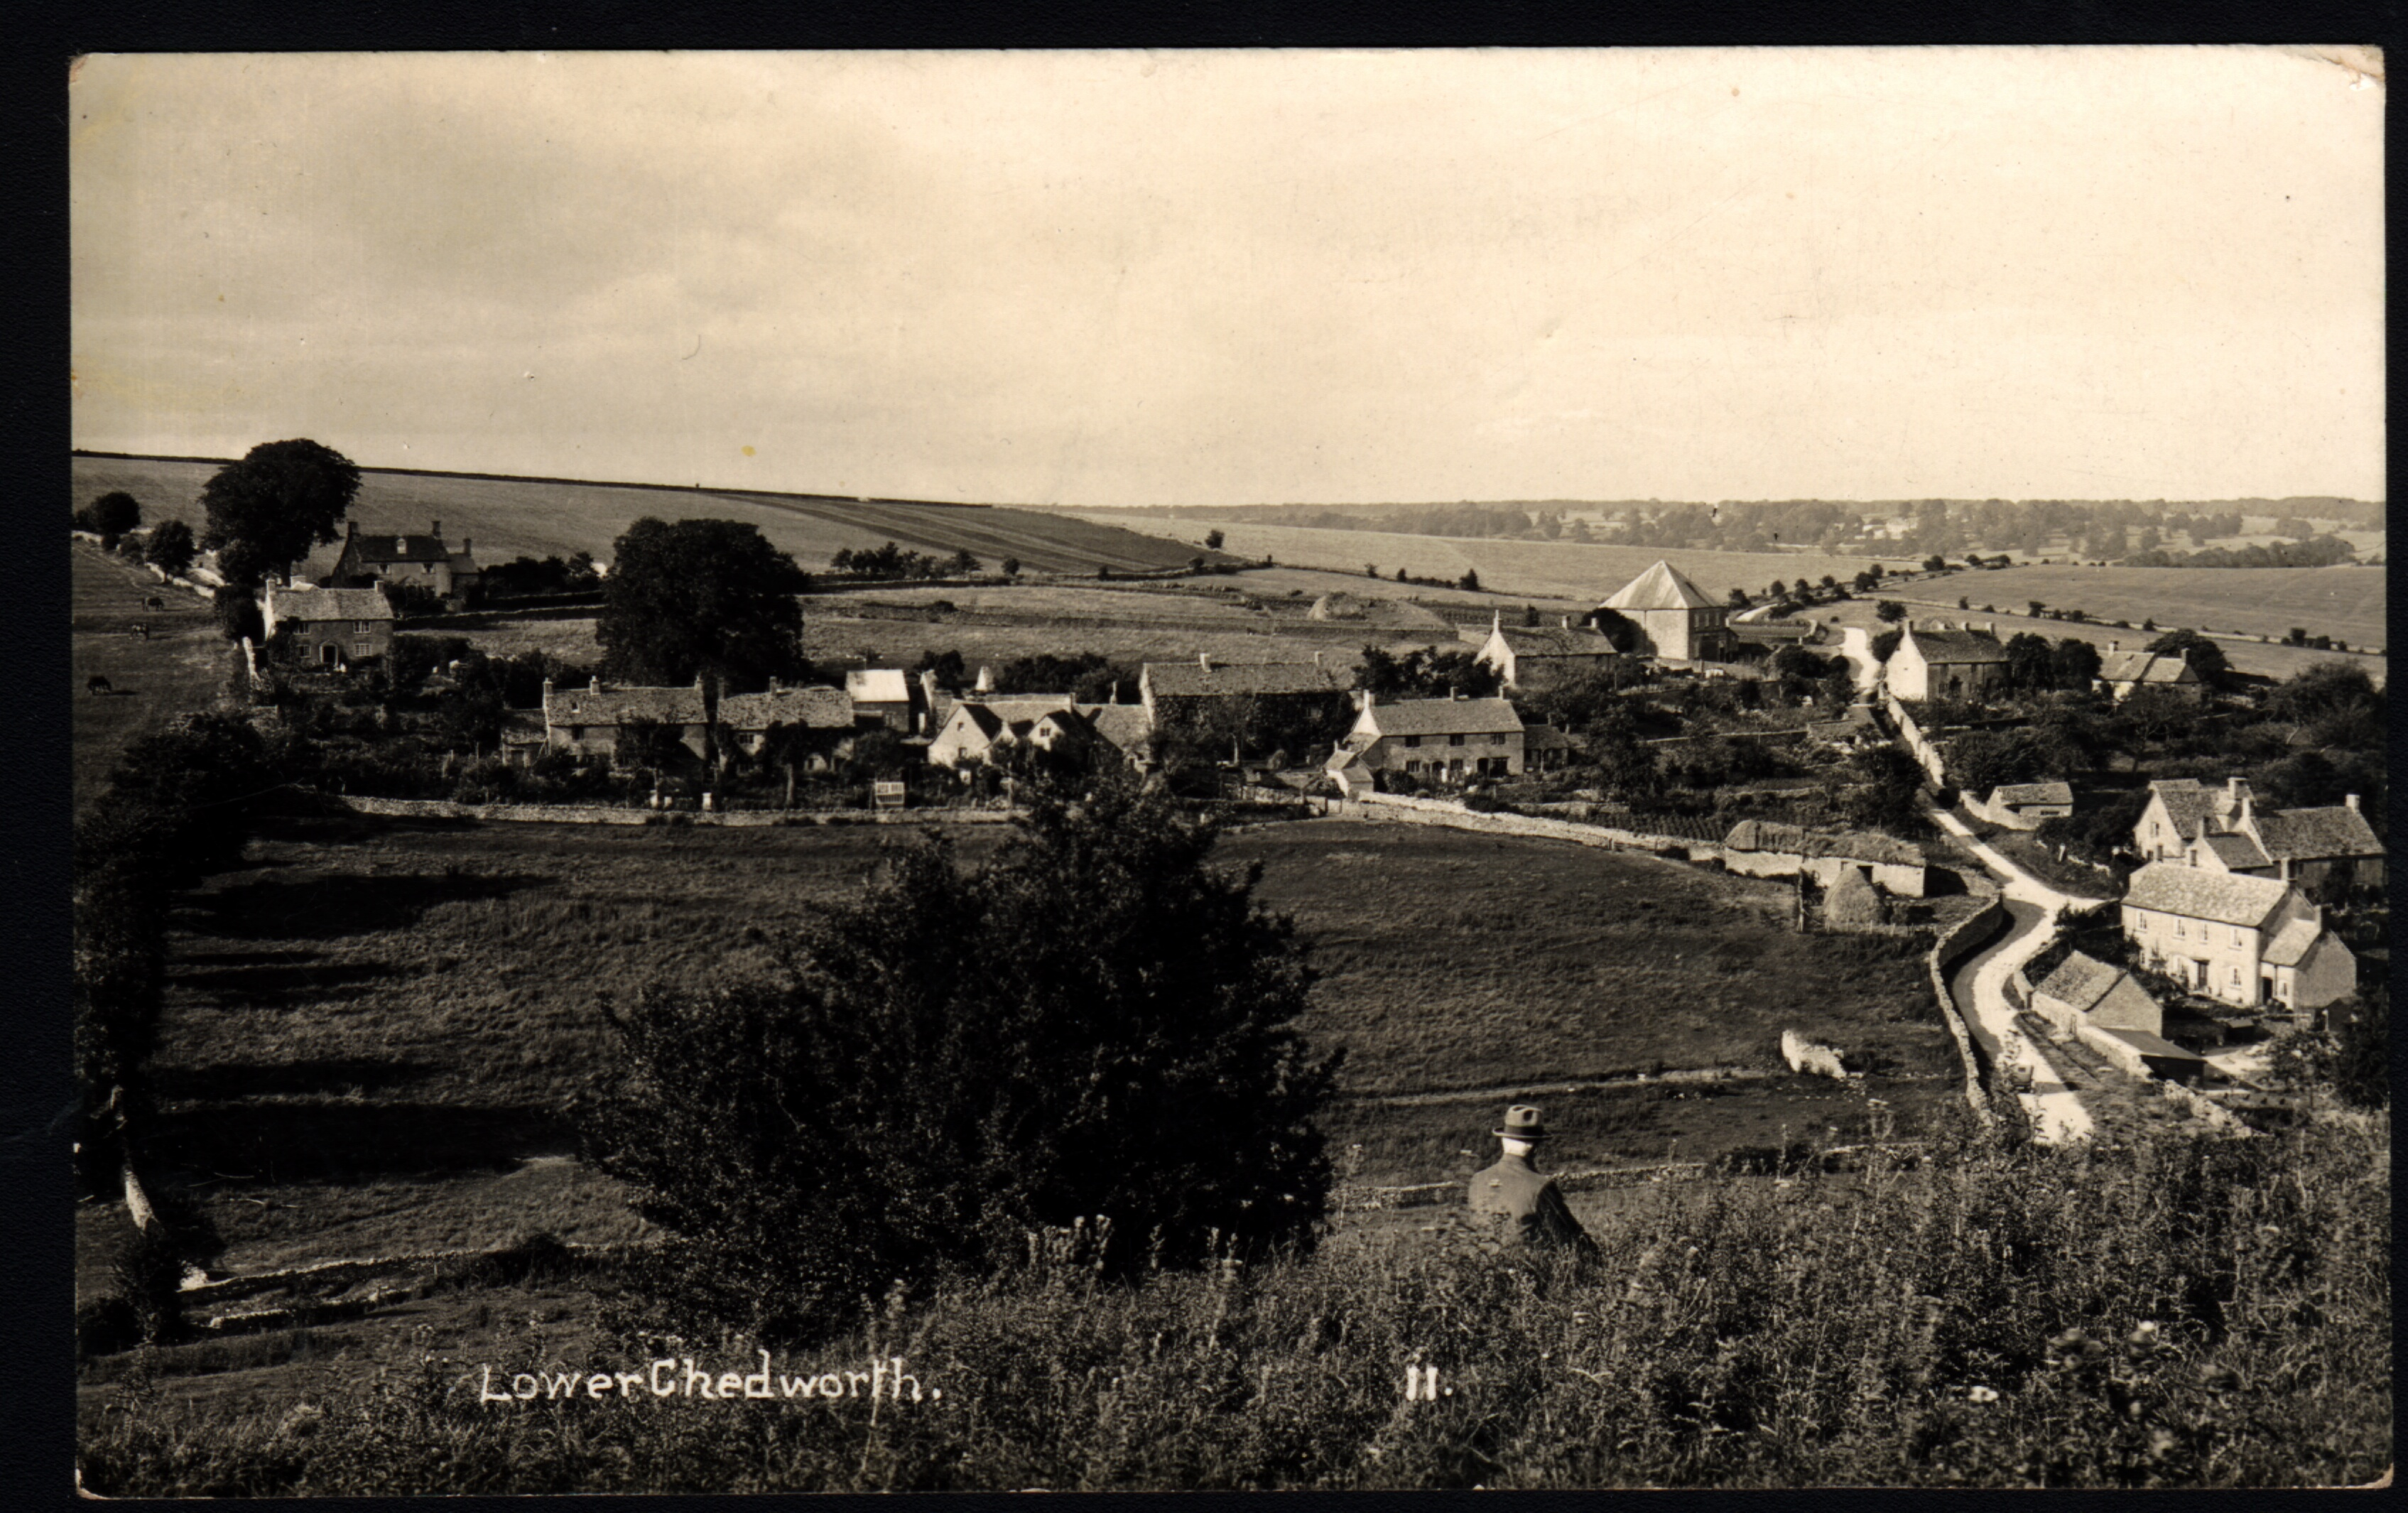 Andrew Collett's great grandfather and family lived in Chedworth mid 19th century to early 20th and this postcard has been passed down.